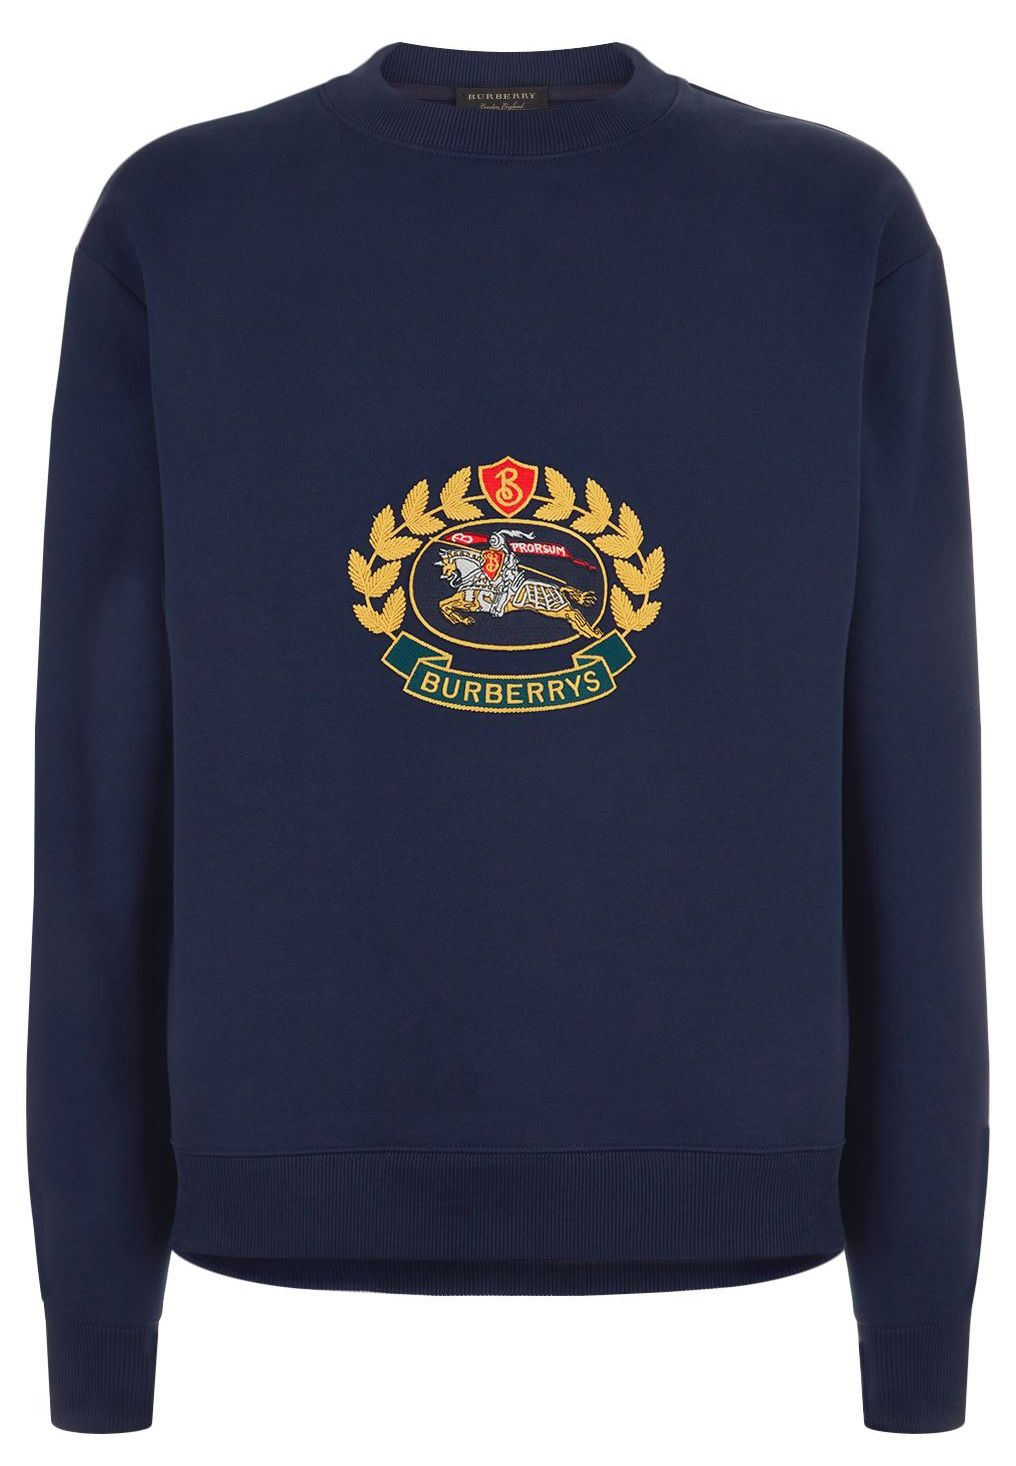 Burberry Embroidered Equestrian Knight Crest Sweatshirt Mens Sweatshirts Hoodie Sweatshirts Mens Sweatshirts [ 1466 x 1016 Pixel ]